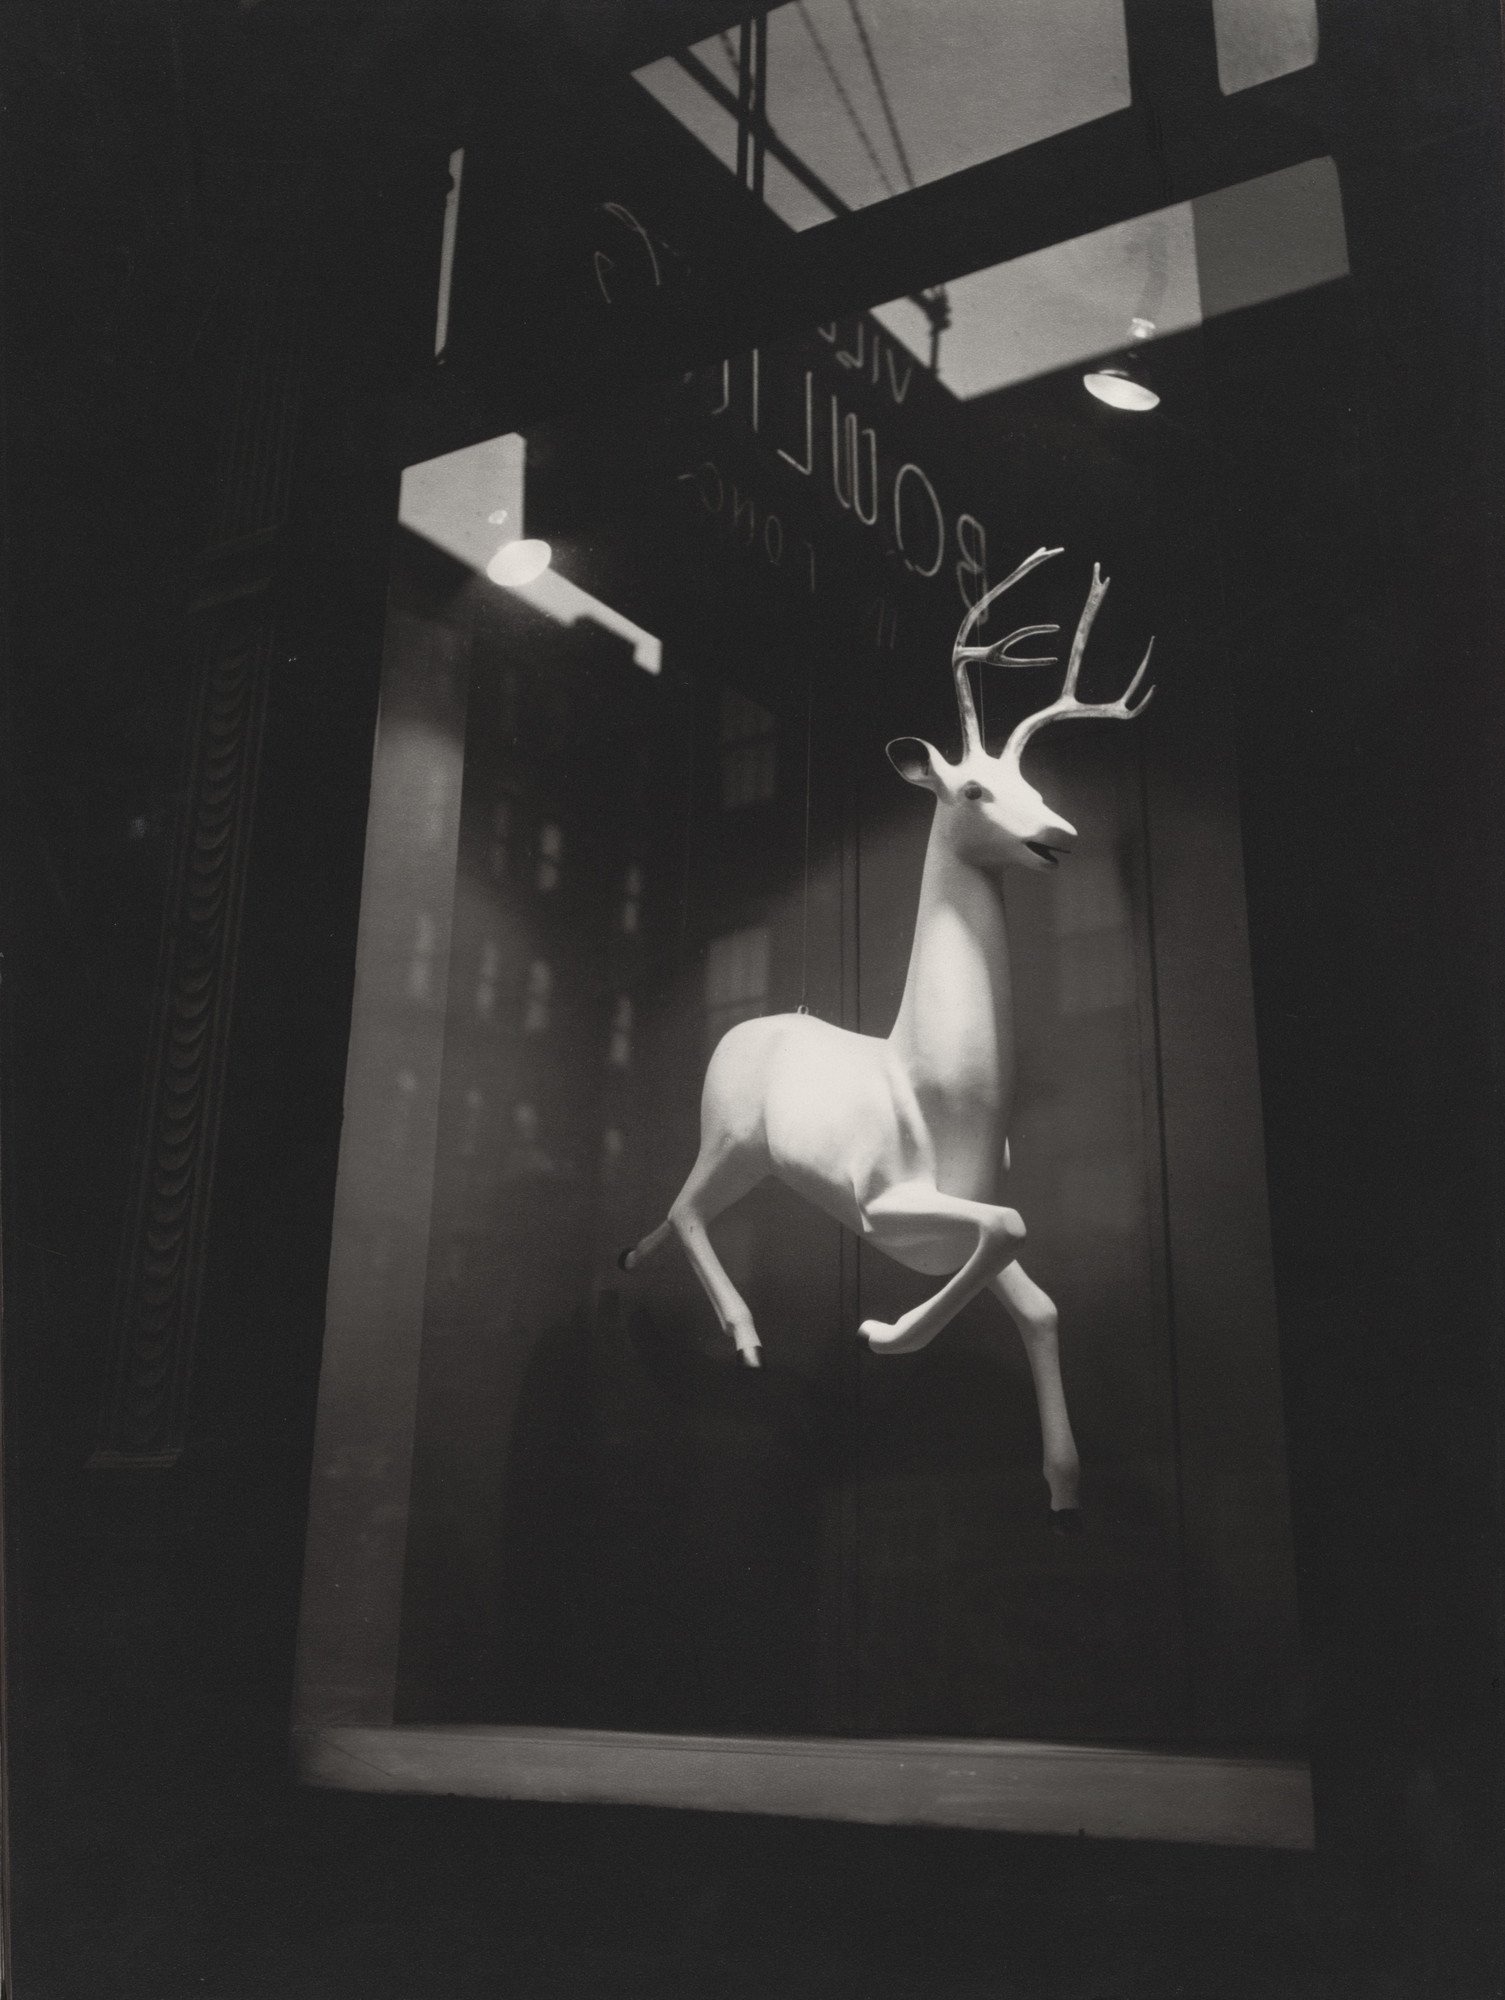 Berenice Abbott. An Industrial Designer's Window, Bleecker Street. 1948